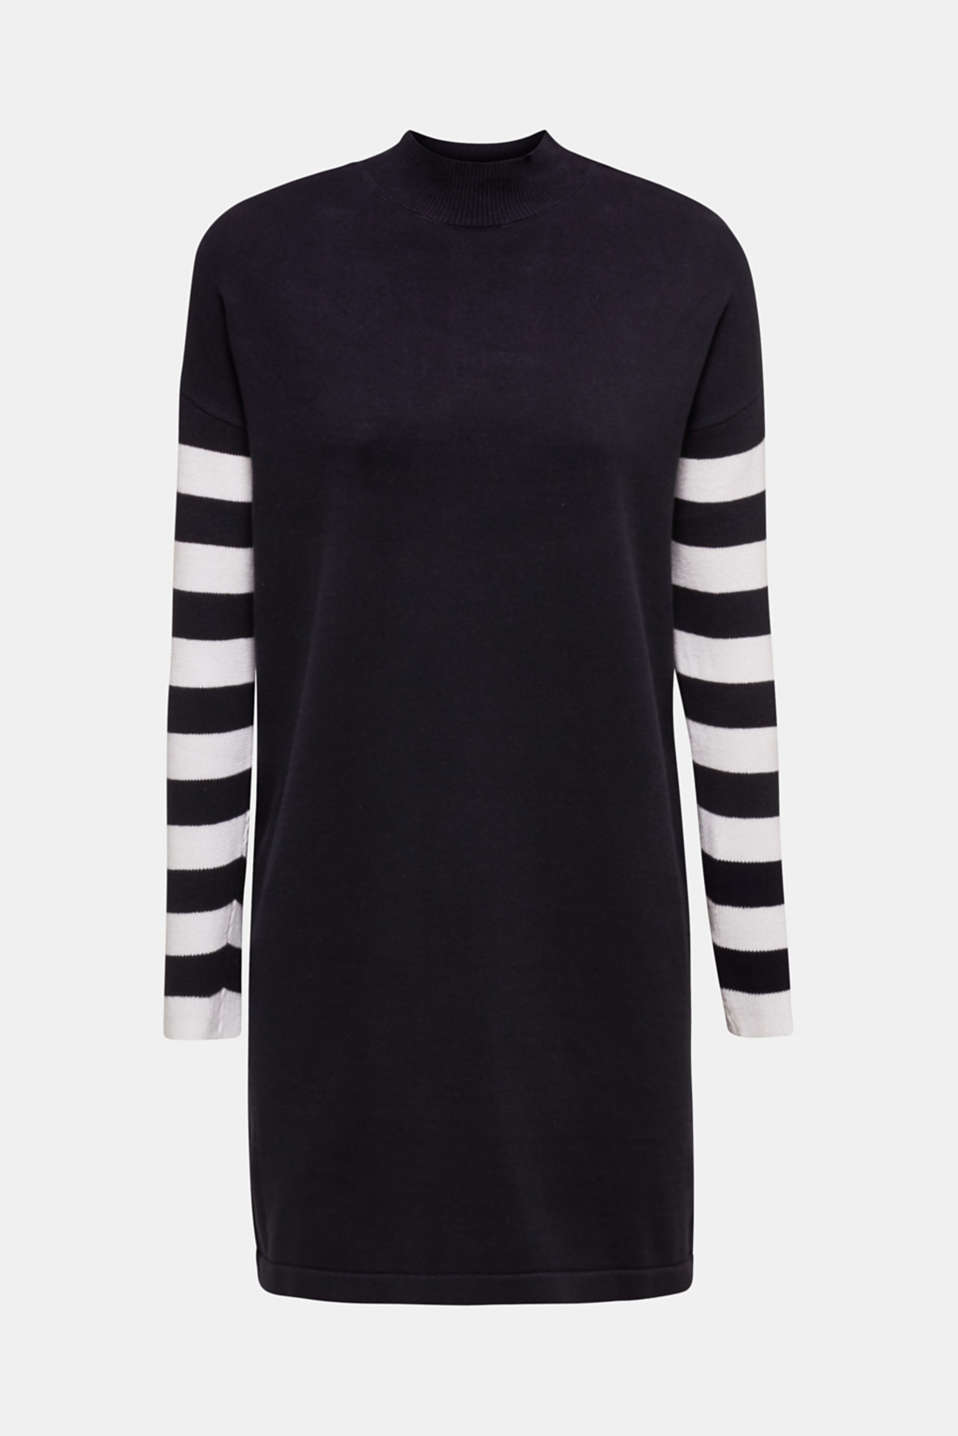 Knit dress with stripes, 100% cotton, NAVY 2, detail image number 8